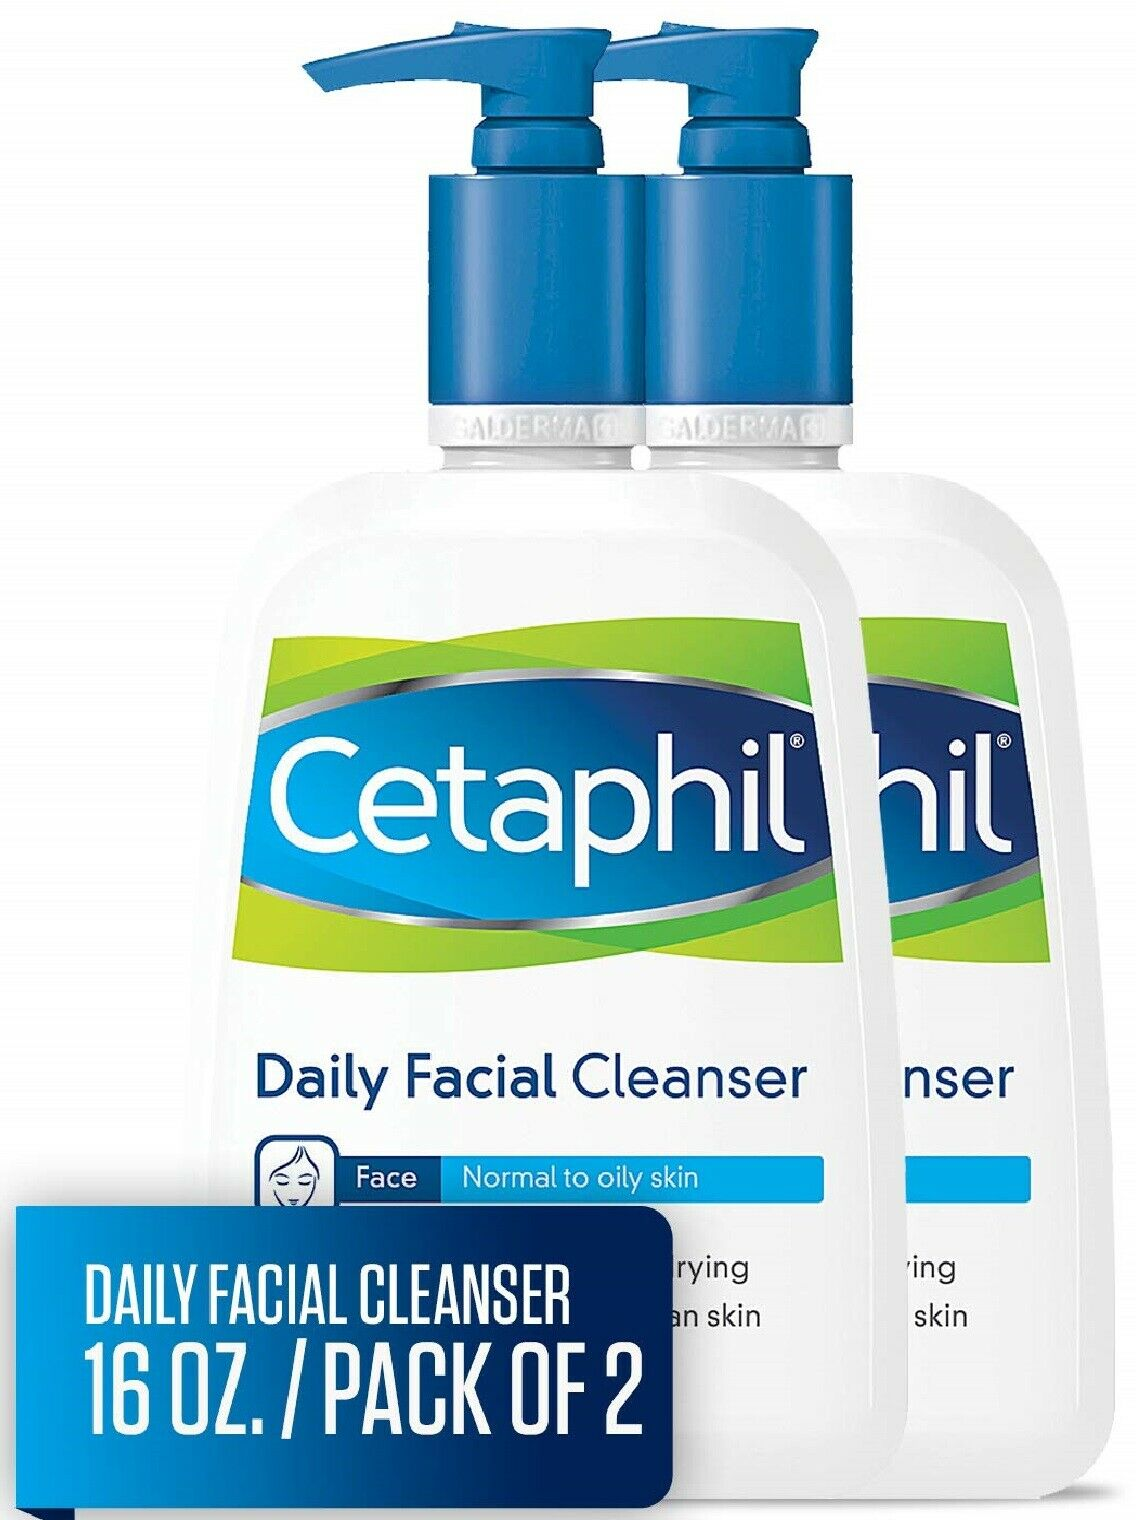 Cetaphil Facial Cleanser, Daily Face Wash for Normal to Oily